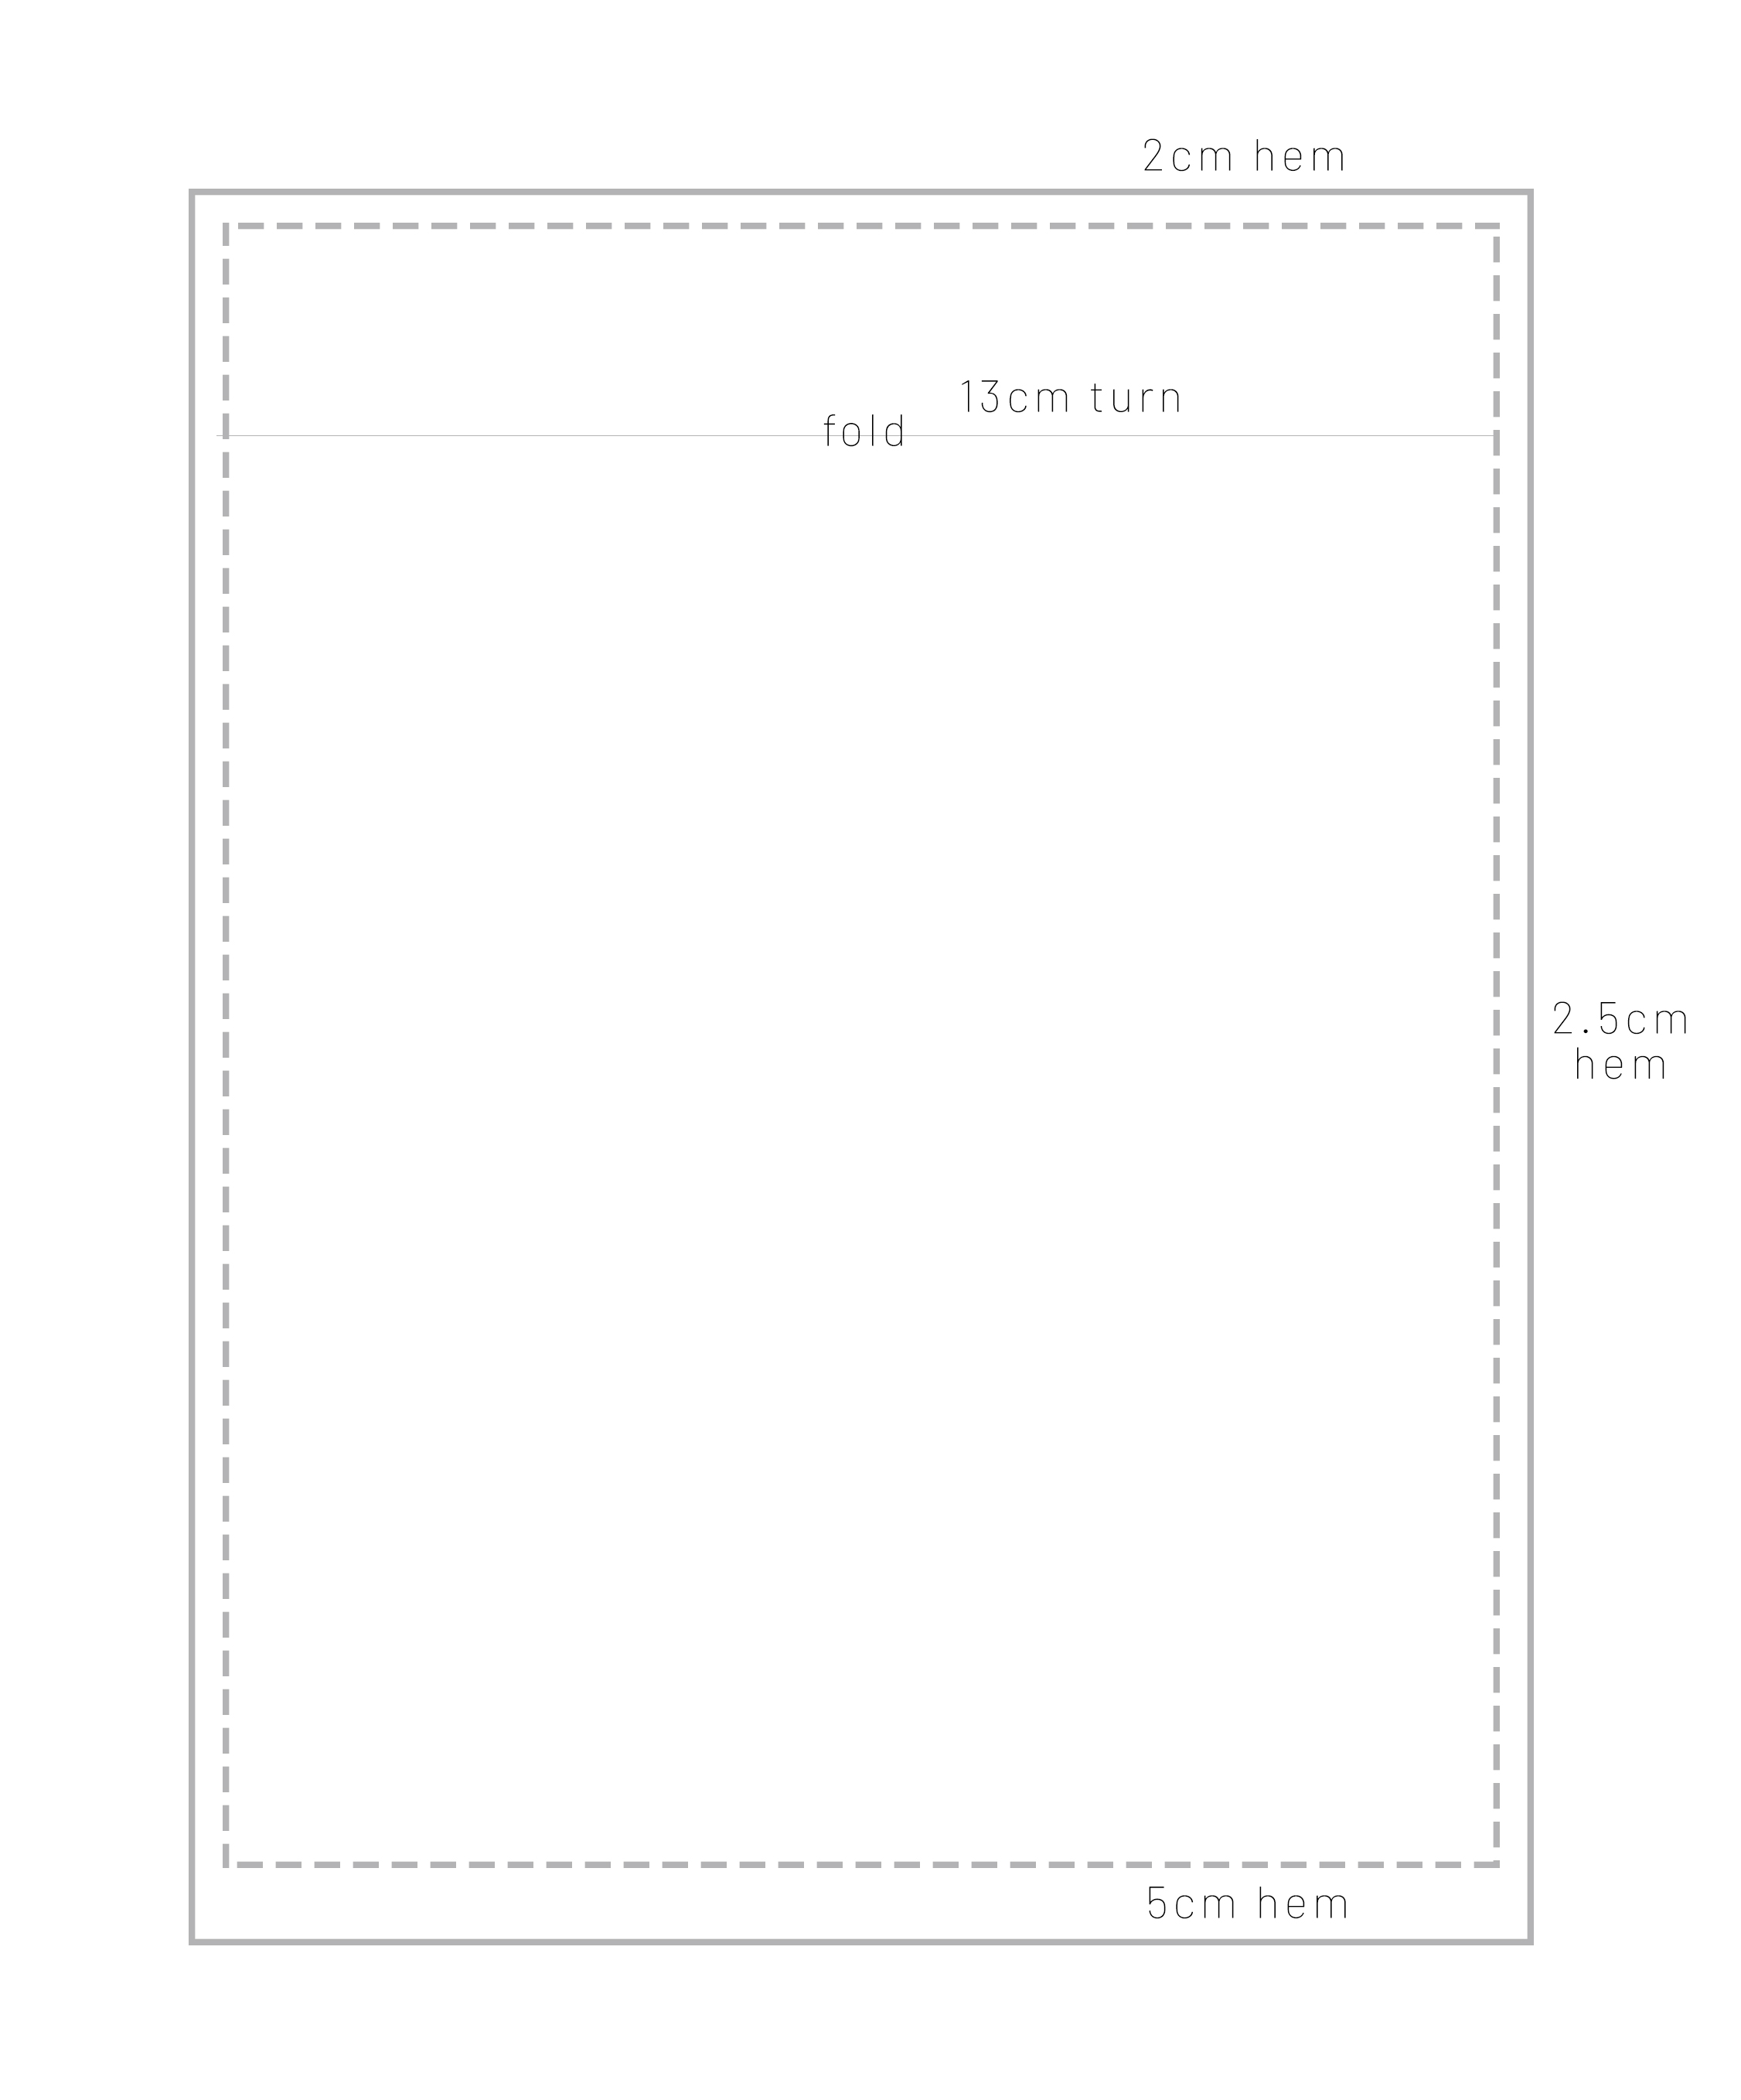 Flat sheet - This is a basic diagram on how to cut out flat sheets using the guide above for meterage.